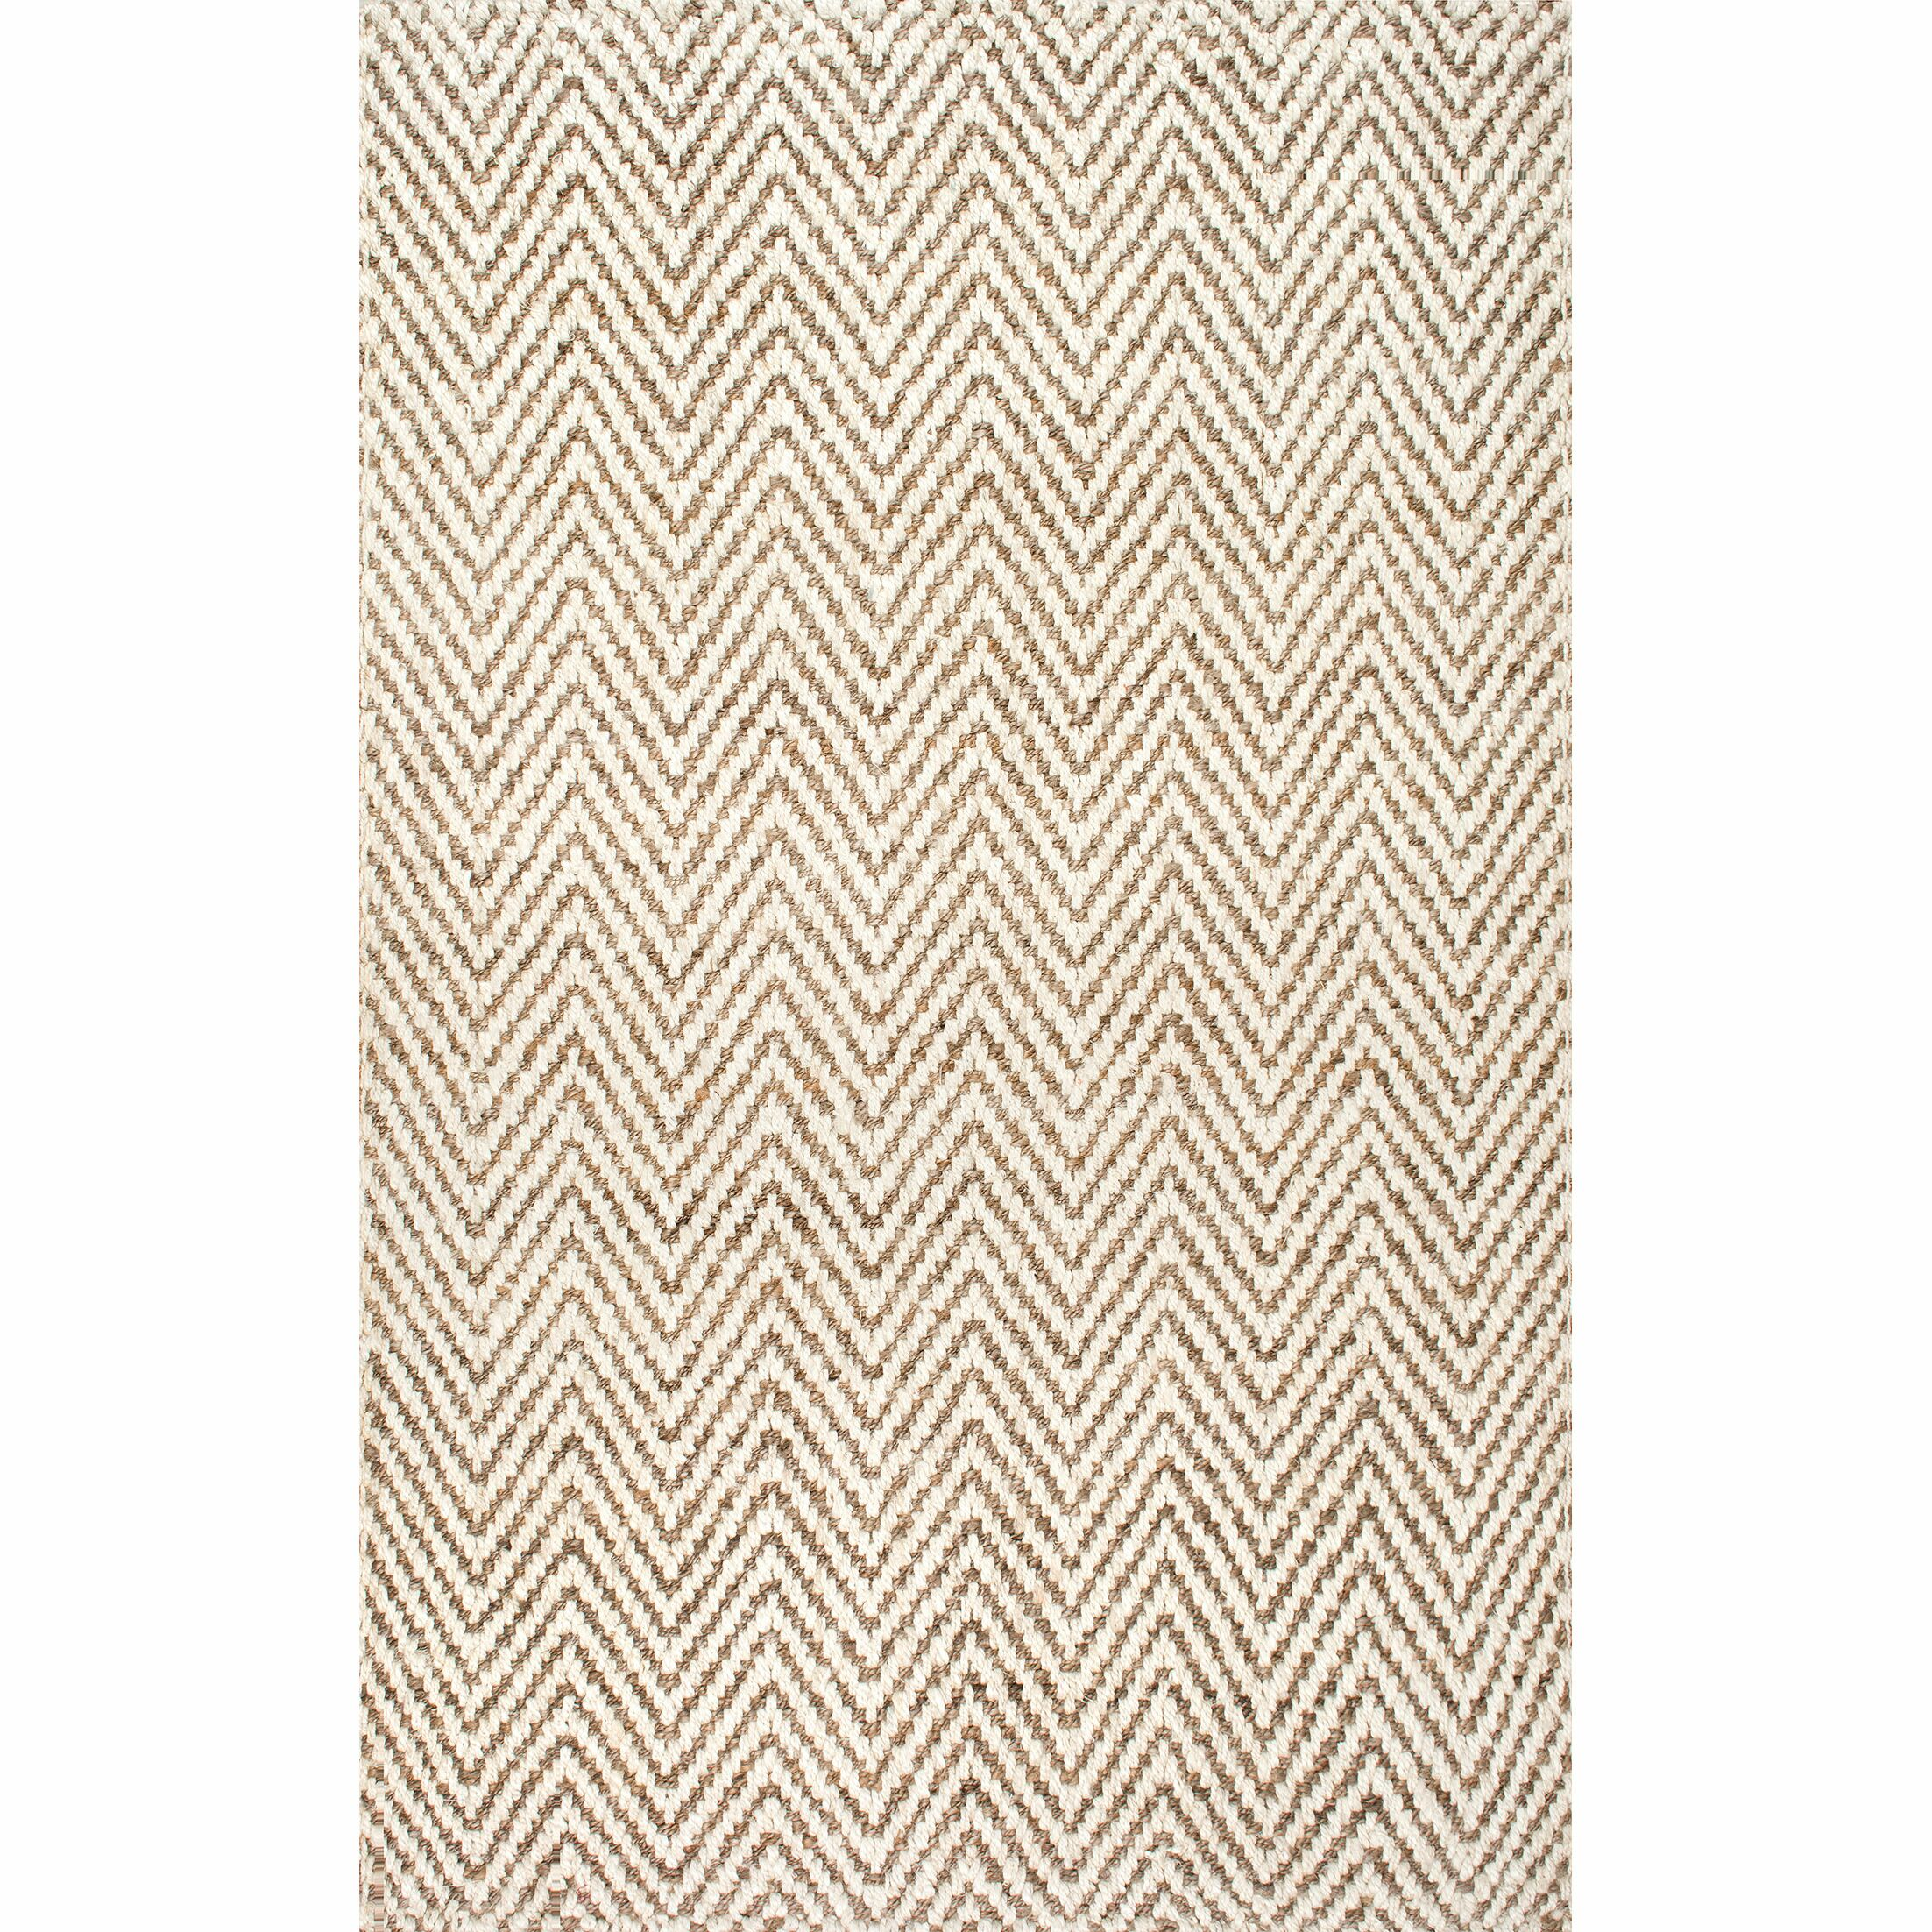 Norcross Hand-Woven Tan Area Rug Rug Size: Rectangle 4' x 6'